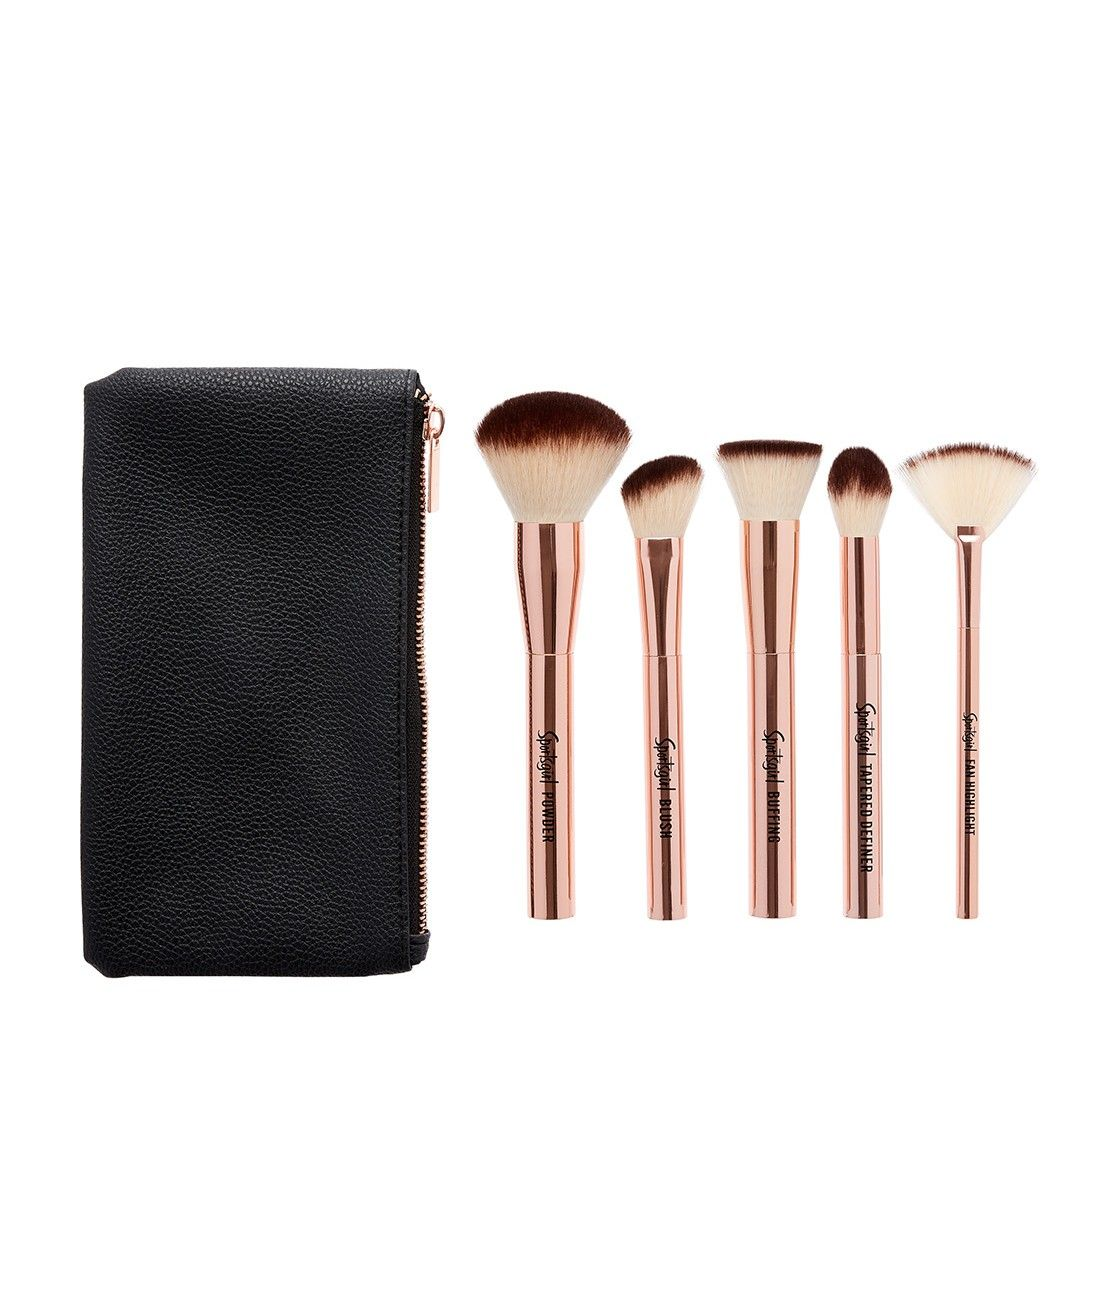 Vegan Brush With Fame First Class Travel Beauty